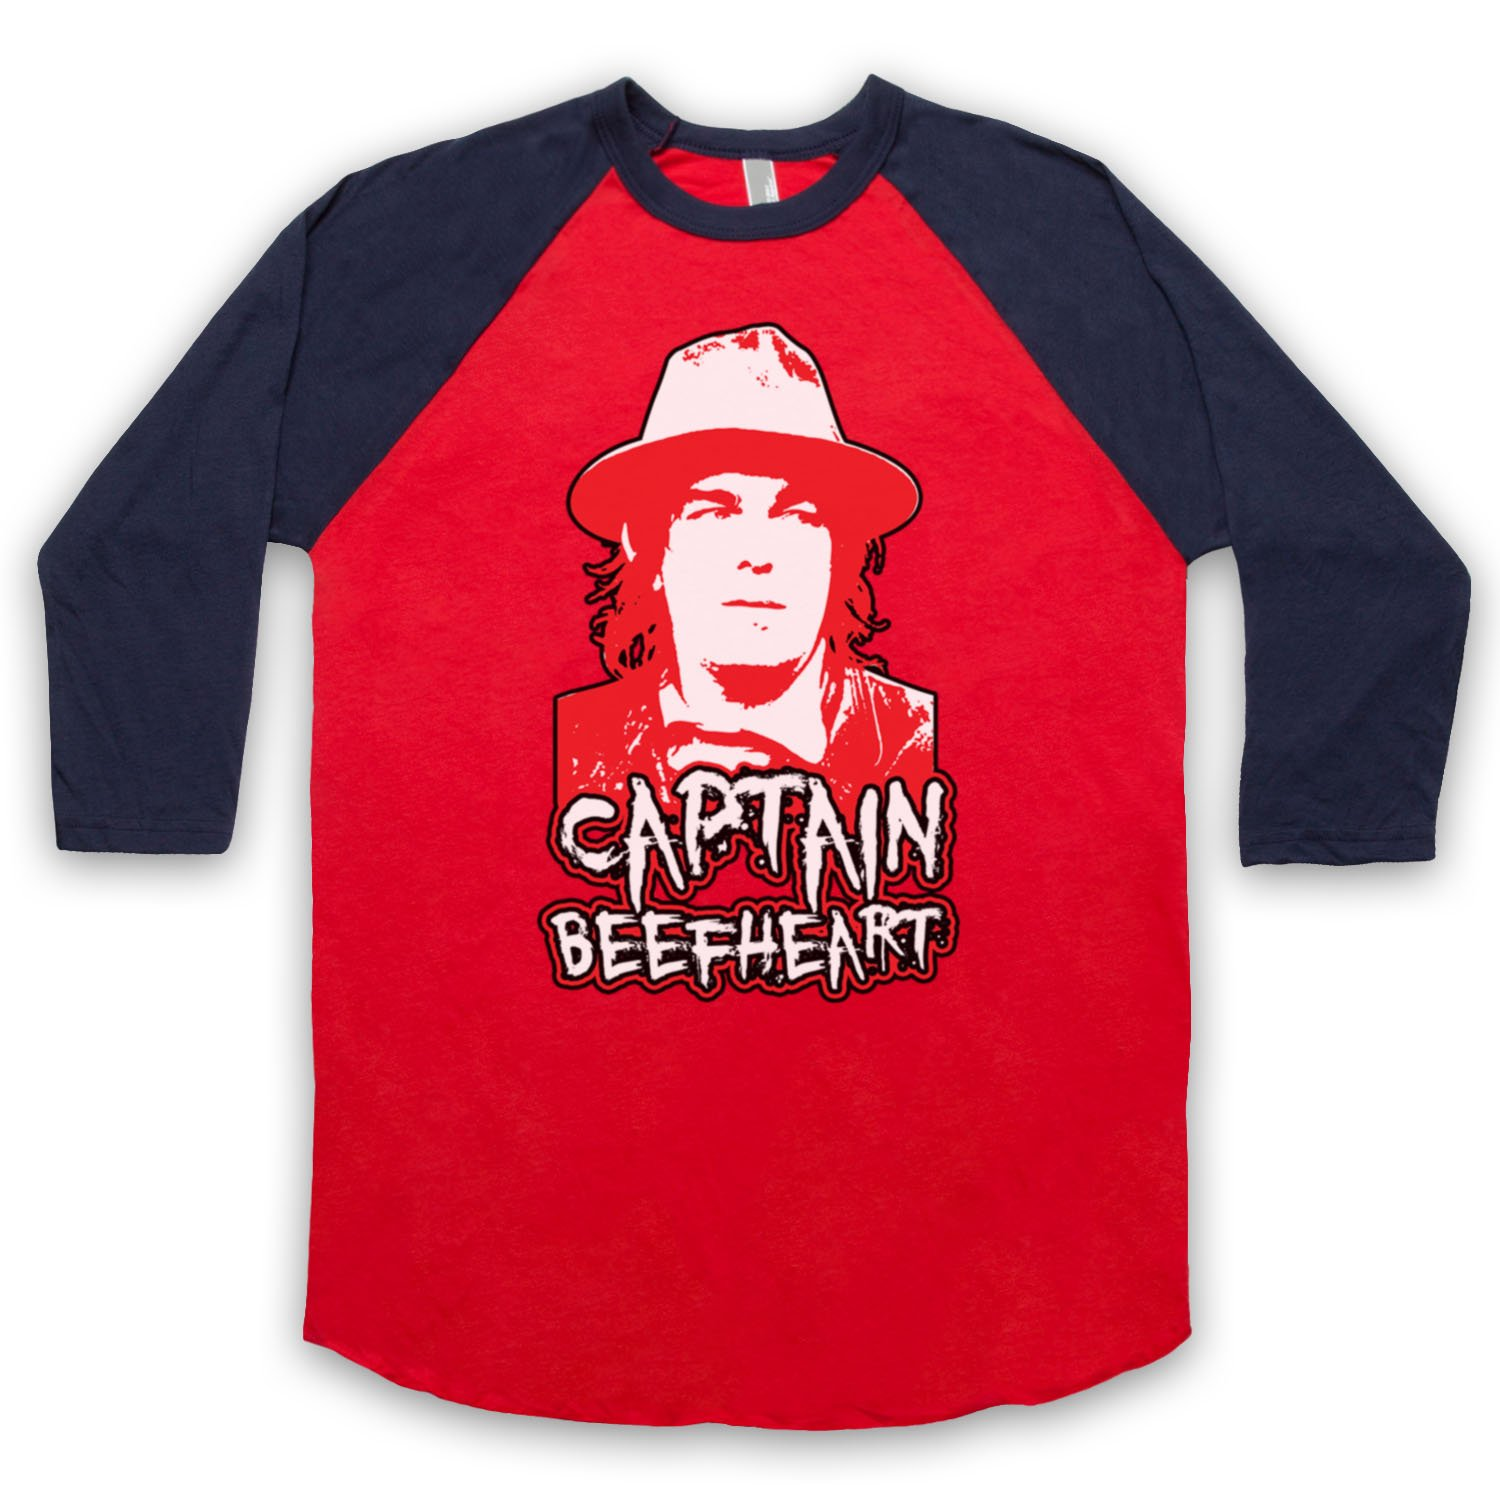 Inspired by Captain Beefheart Don Van Vliet Unofficial 3/4 Sleeve Retro Baseball Tee